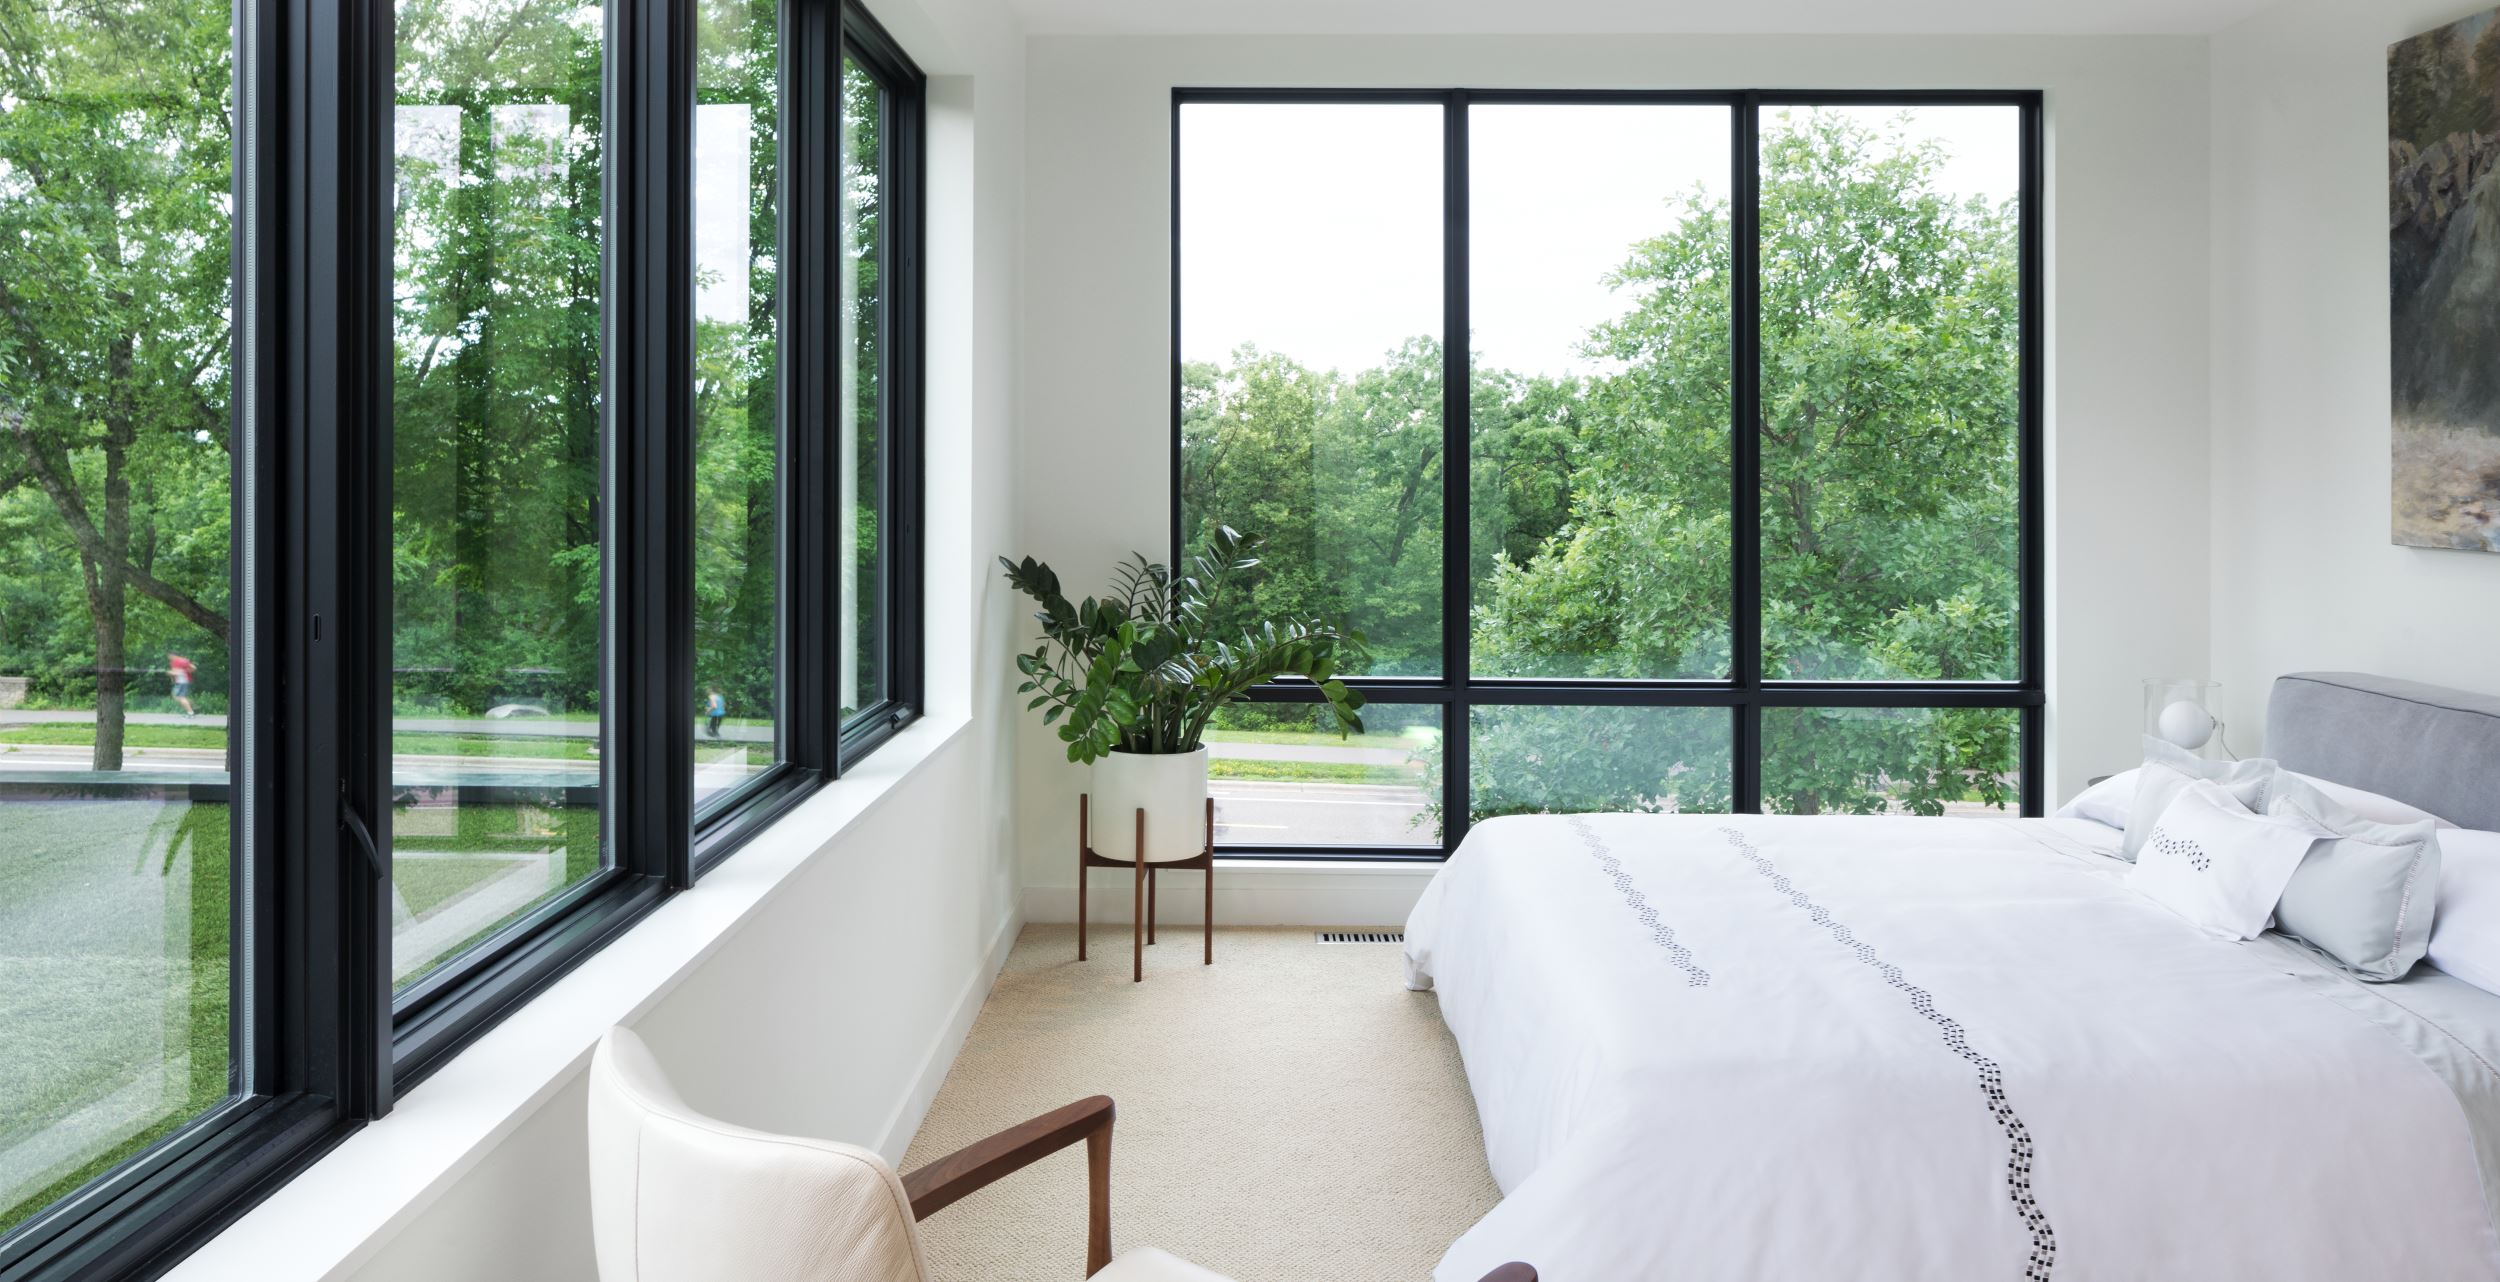 The Top Trends in Windows & Doors for 2020